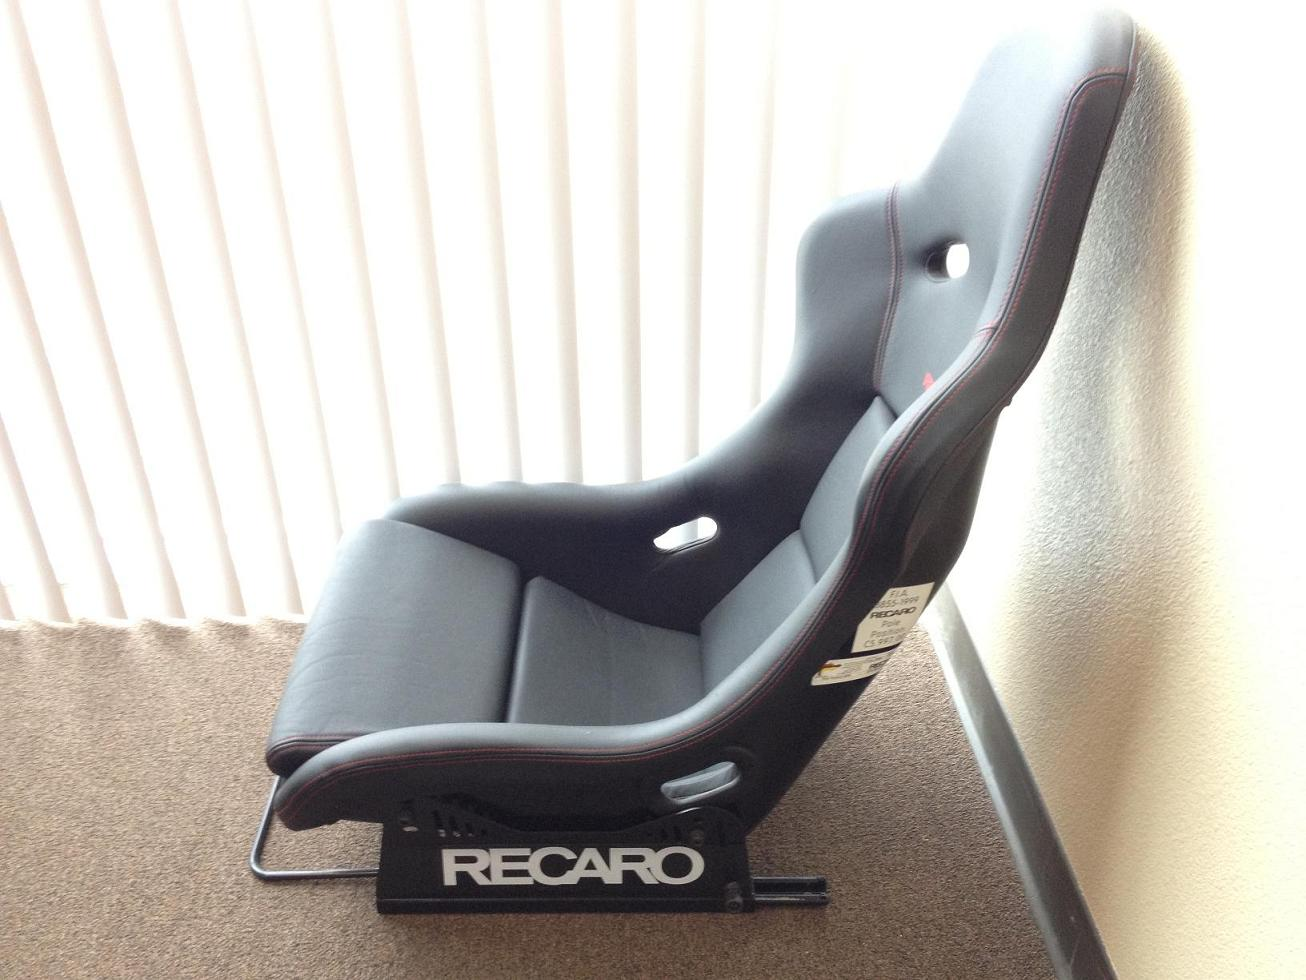 fs recaro pole position. Black Bedroom Furniture Sets. Home Design Ideas